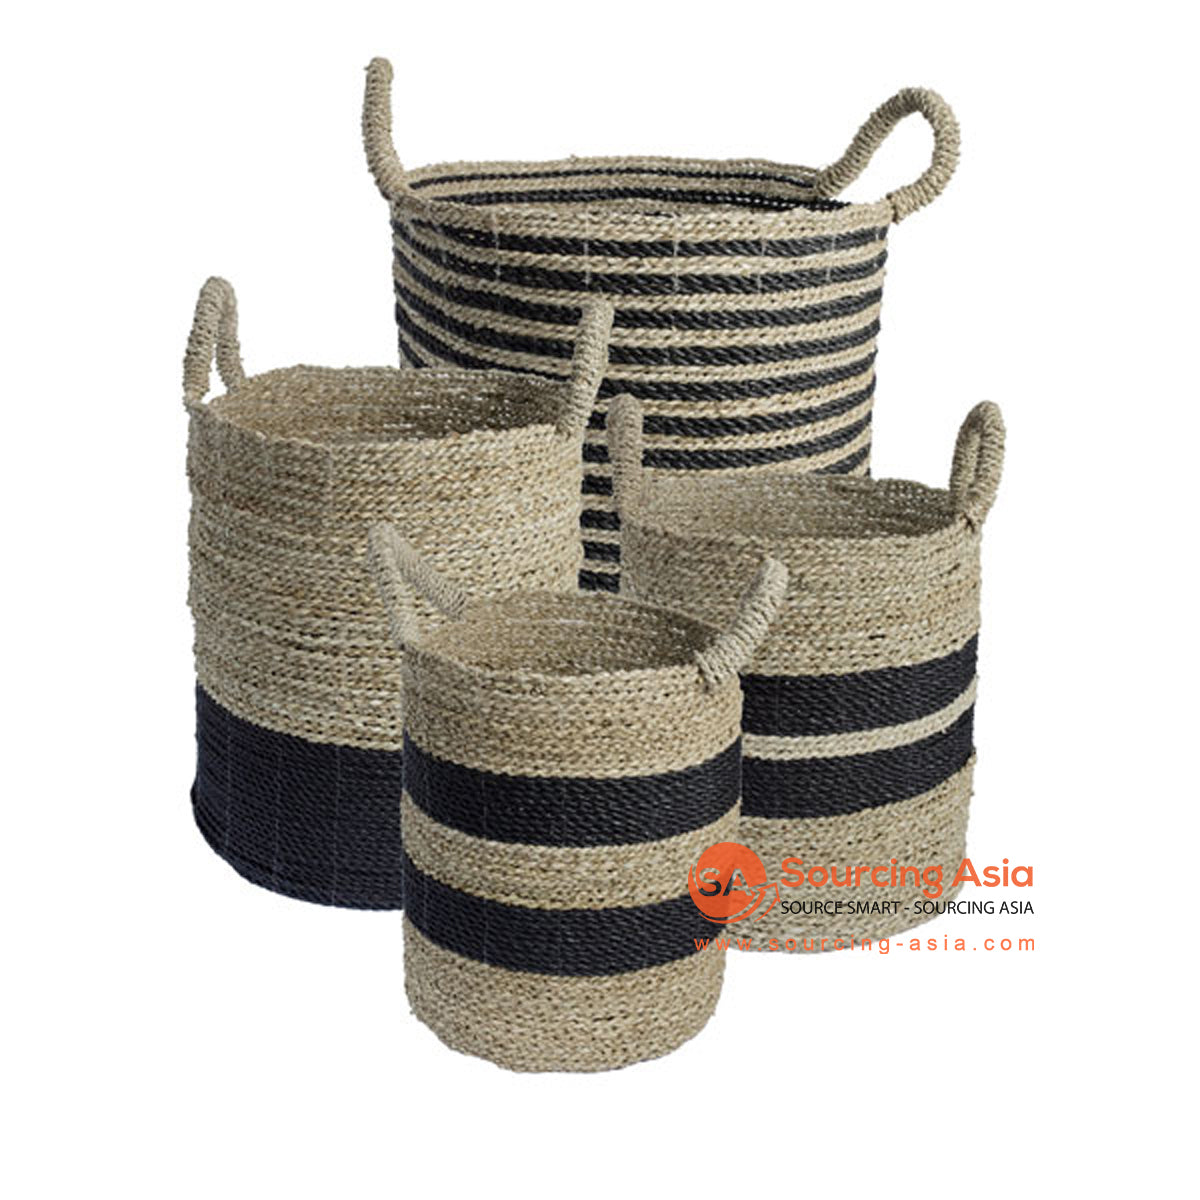 SHL168-6 SET OF FOUR NATURAL AND BLACK SEAGRASS BASKETS